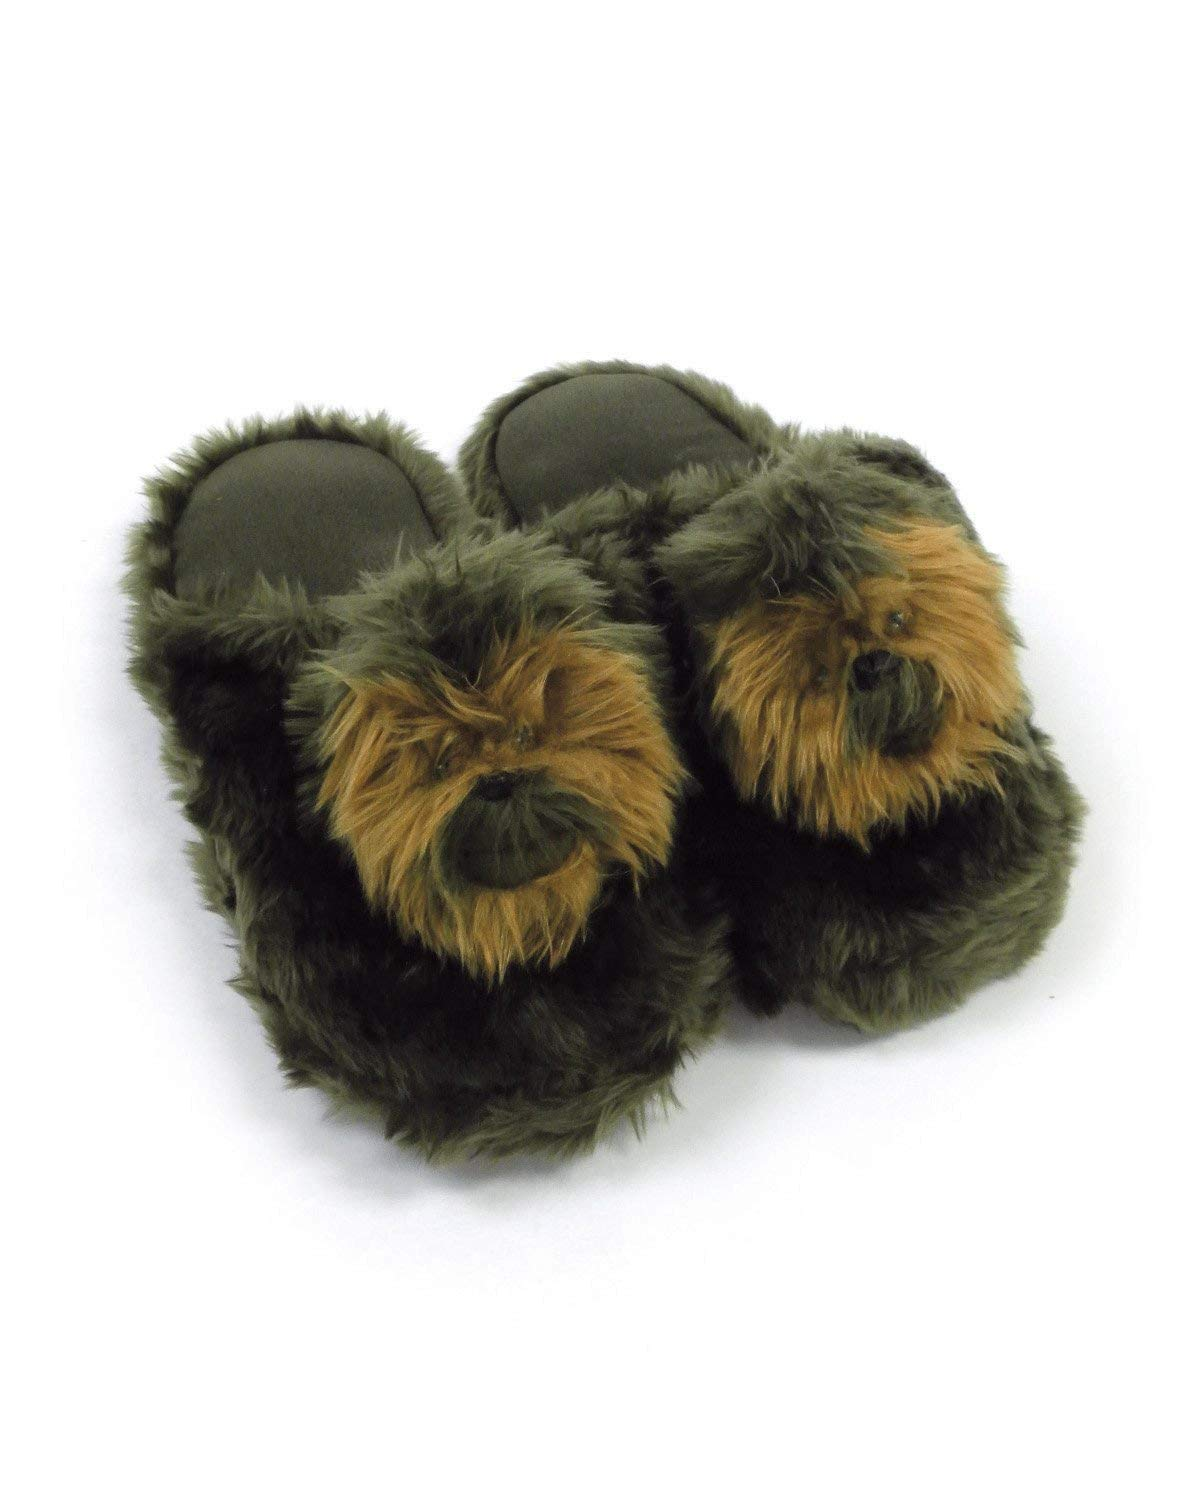 SW Large Chewbacca Slippers